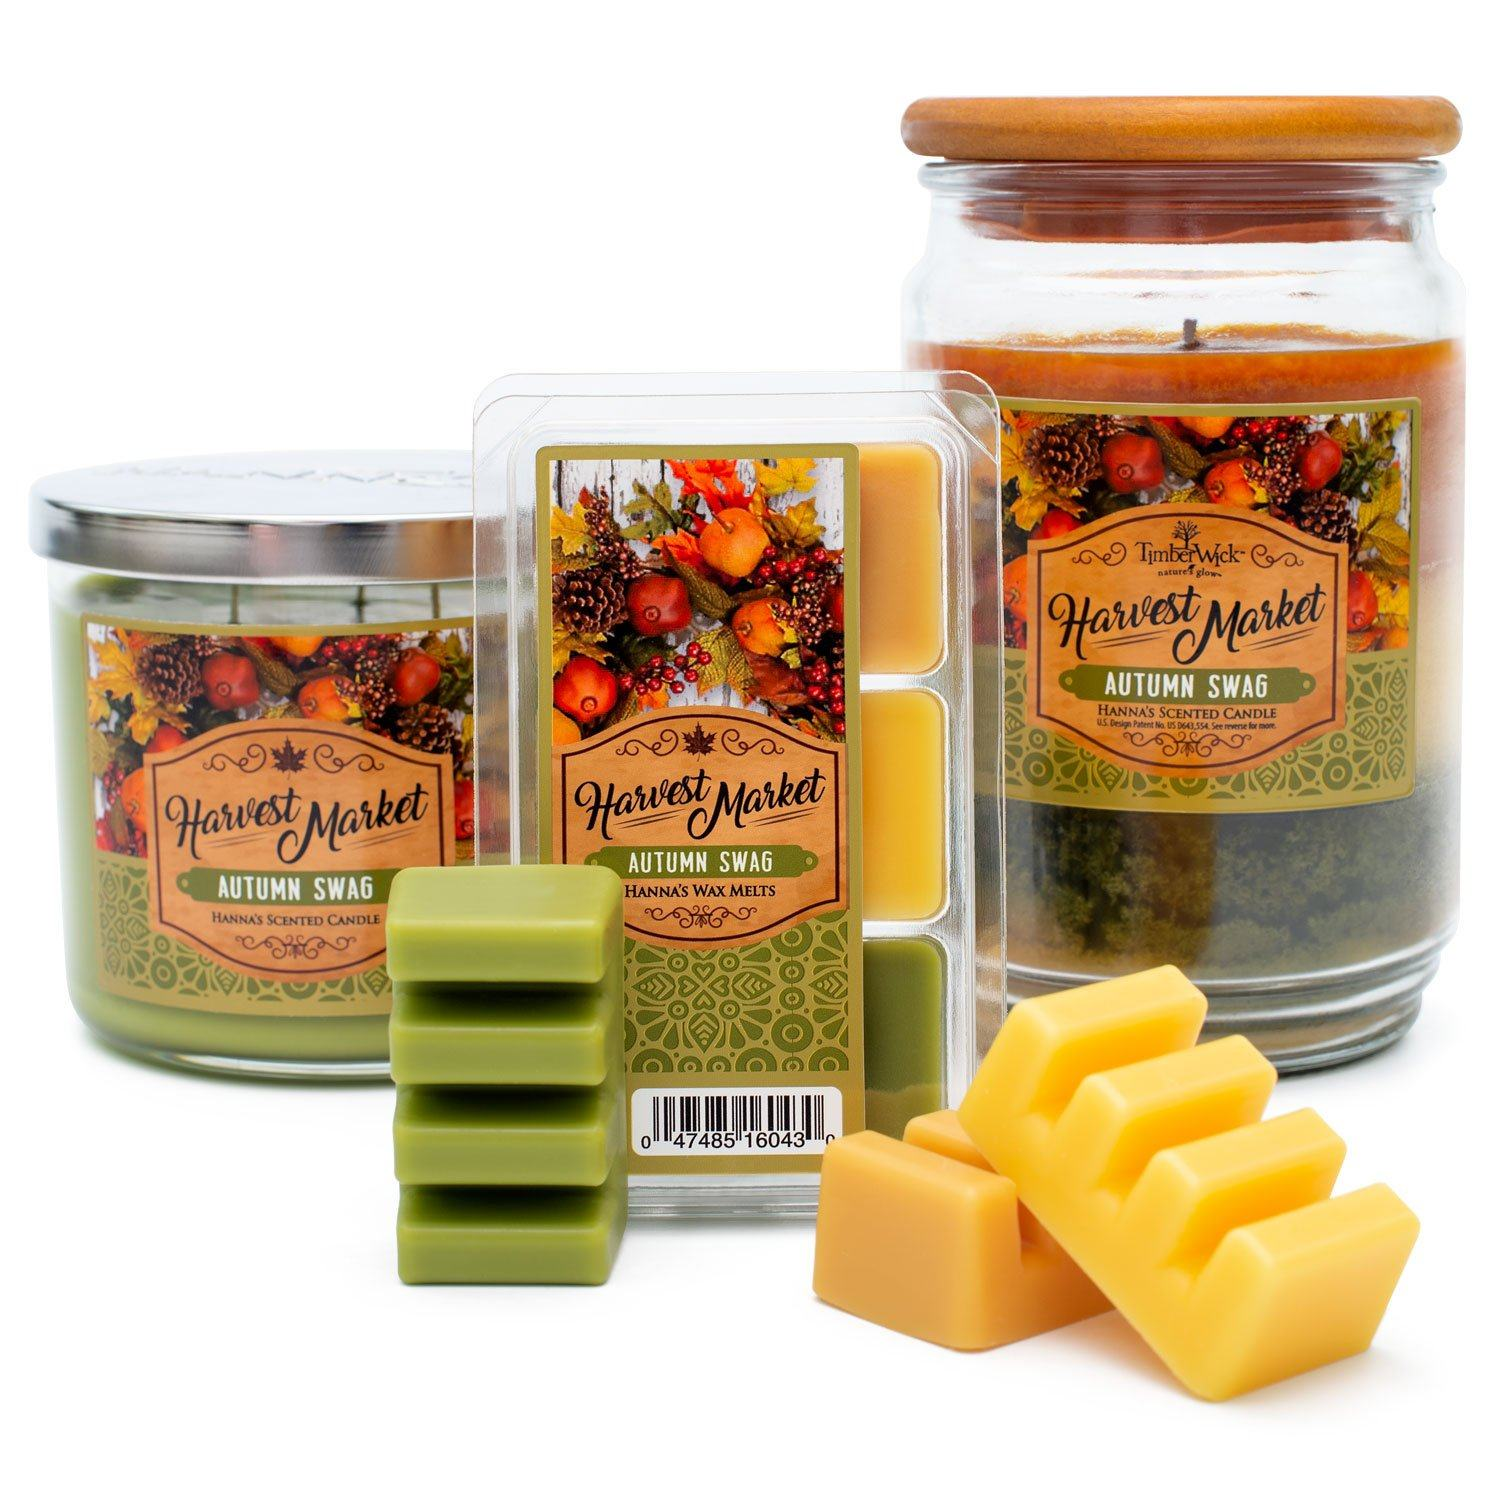 Autumn Swag Scented 3 Wick Candle Candles Candlemart.com $ 11.99